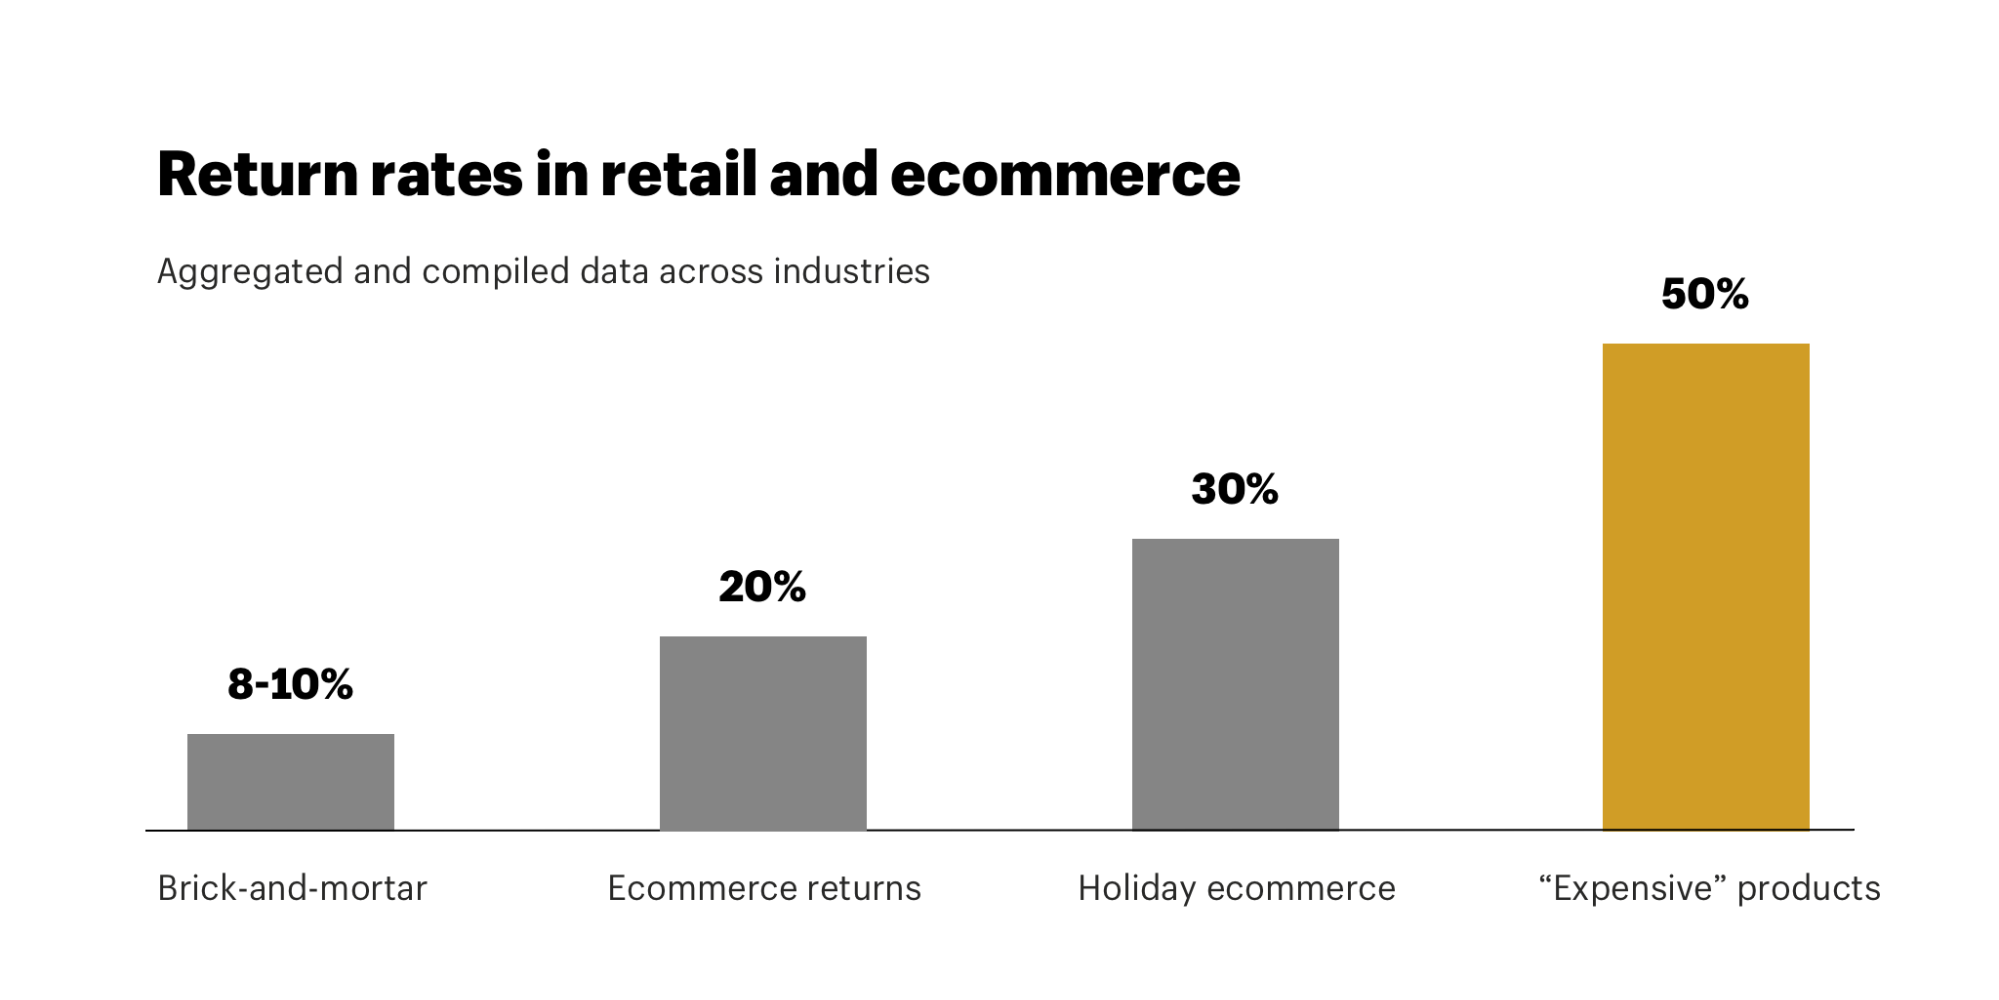 Ecommerce return rates compared to retail